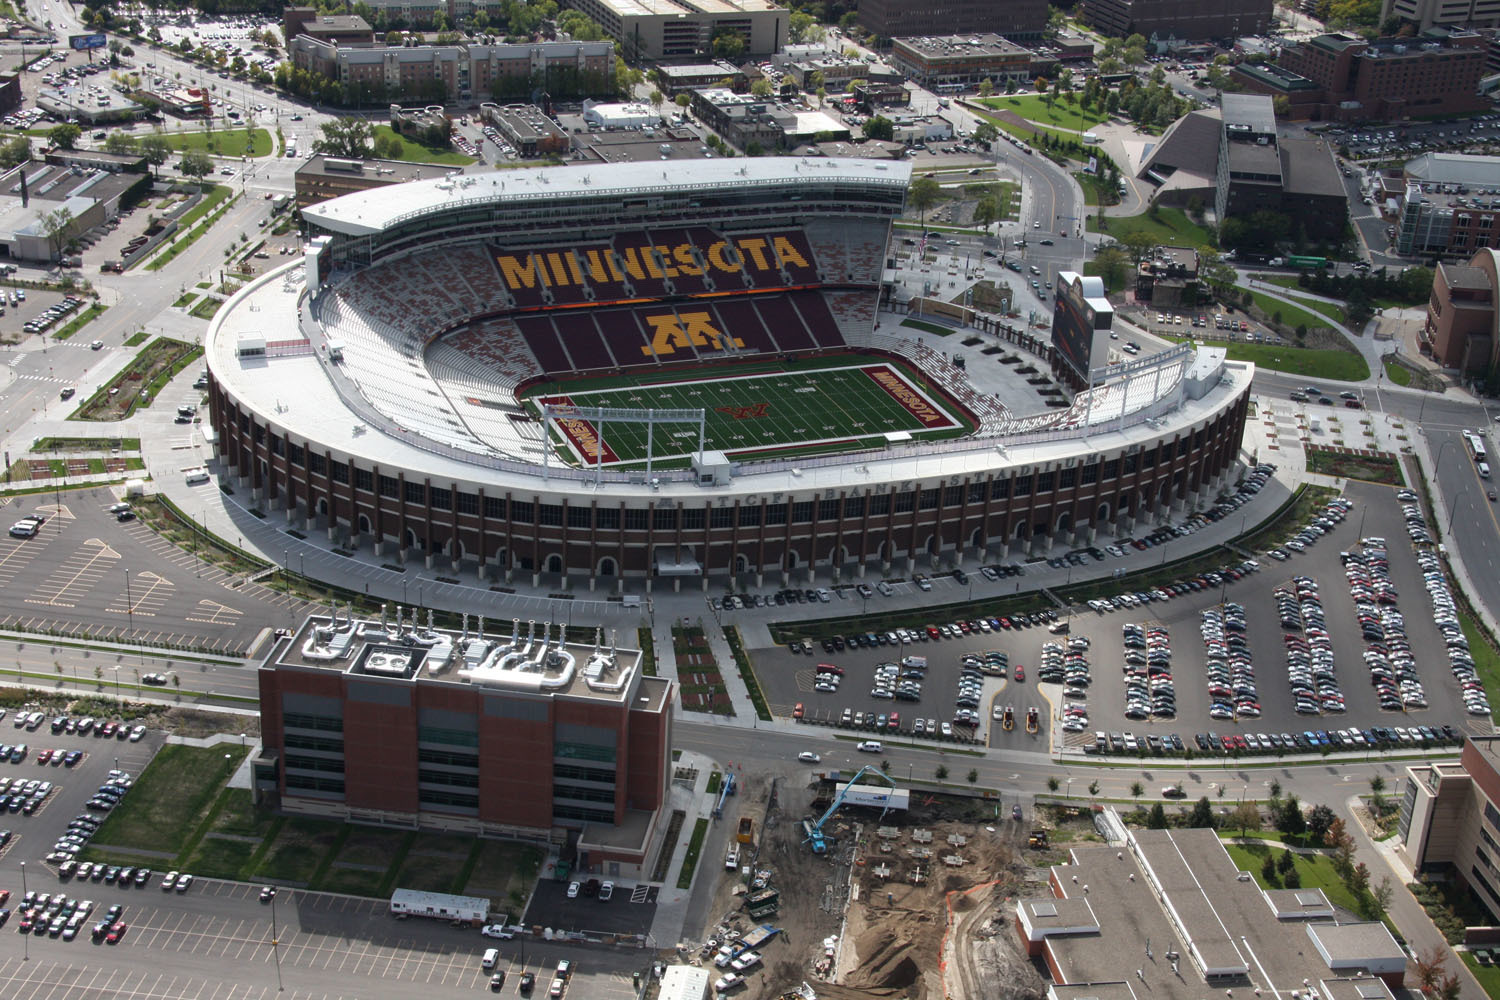 """""""It was my great pleasure to work with Gage Brothers. The University of Minnesota benefited by the use of Gage Brothers' precast concrete in the construction of TCF Bank Stadium.   Our original design plan called for hand-laid brick, an arduous project which contractors estimated would require 100 masons on-site for 13 to 14 months. After a discussion with our construction and architectural firms, the decision was made to use precast for the close to 100 colonnade columns that circle the stadium as well as for several other stadium components.   Gage Brothers was very responsive to our project needs by offering a great range of color options and very attentive service. The panels were installed in 10 months and with just 15% of the workforce that would have been needed for hand-laid brick.  Mortenson Construction estimated that we saved $3.2 million dollars and shaved five months off the project schedule by utilizing precast concrete.  From the helpful discussions, insights and expert consultation you provided us in the planning stages through the final clean up, you provided excellent service.""""   - Derek Hillestad, former Director of Operations, TCF Bank Stadium"""